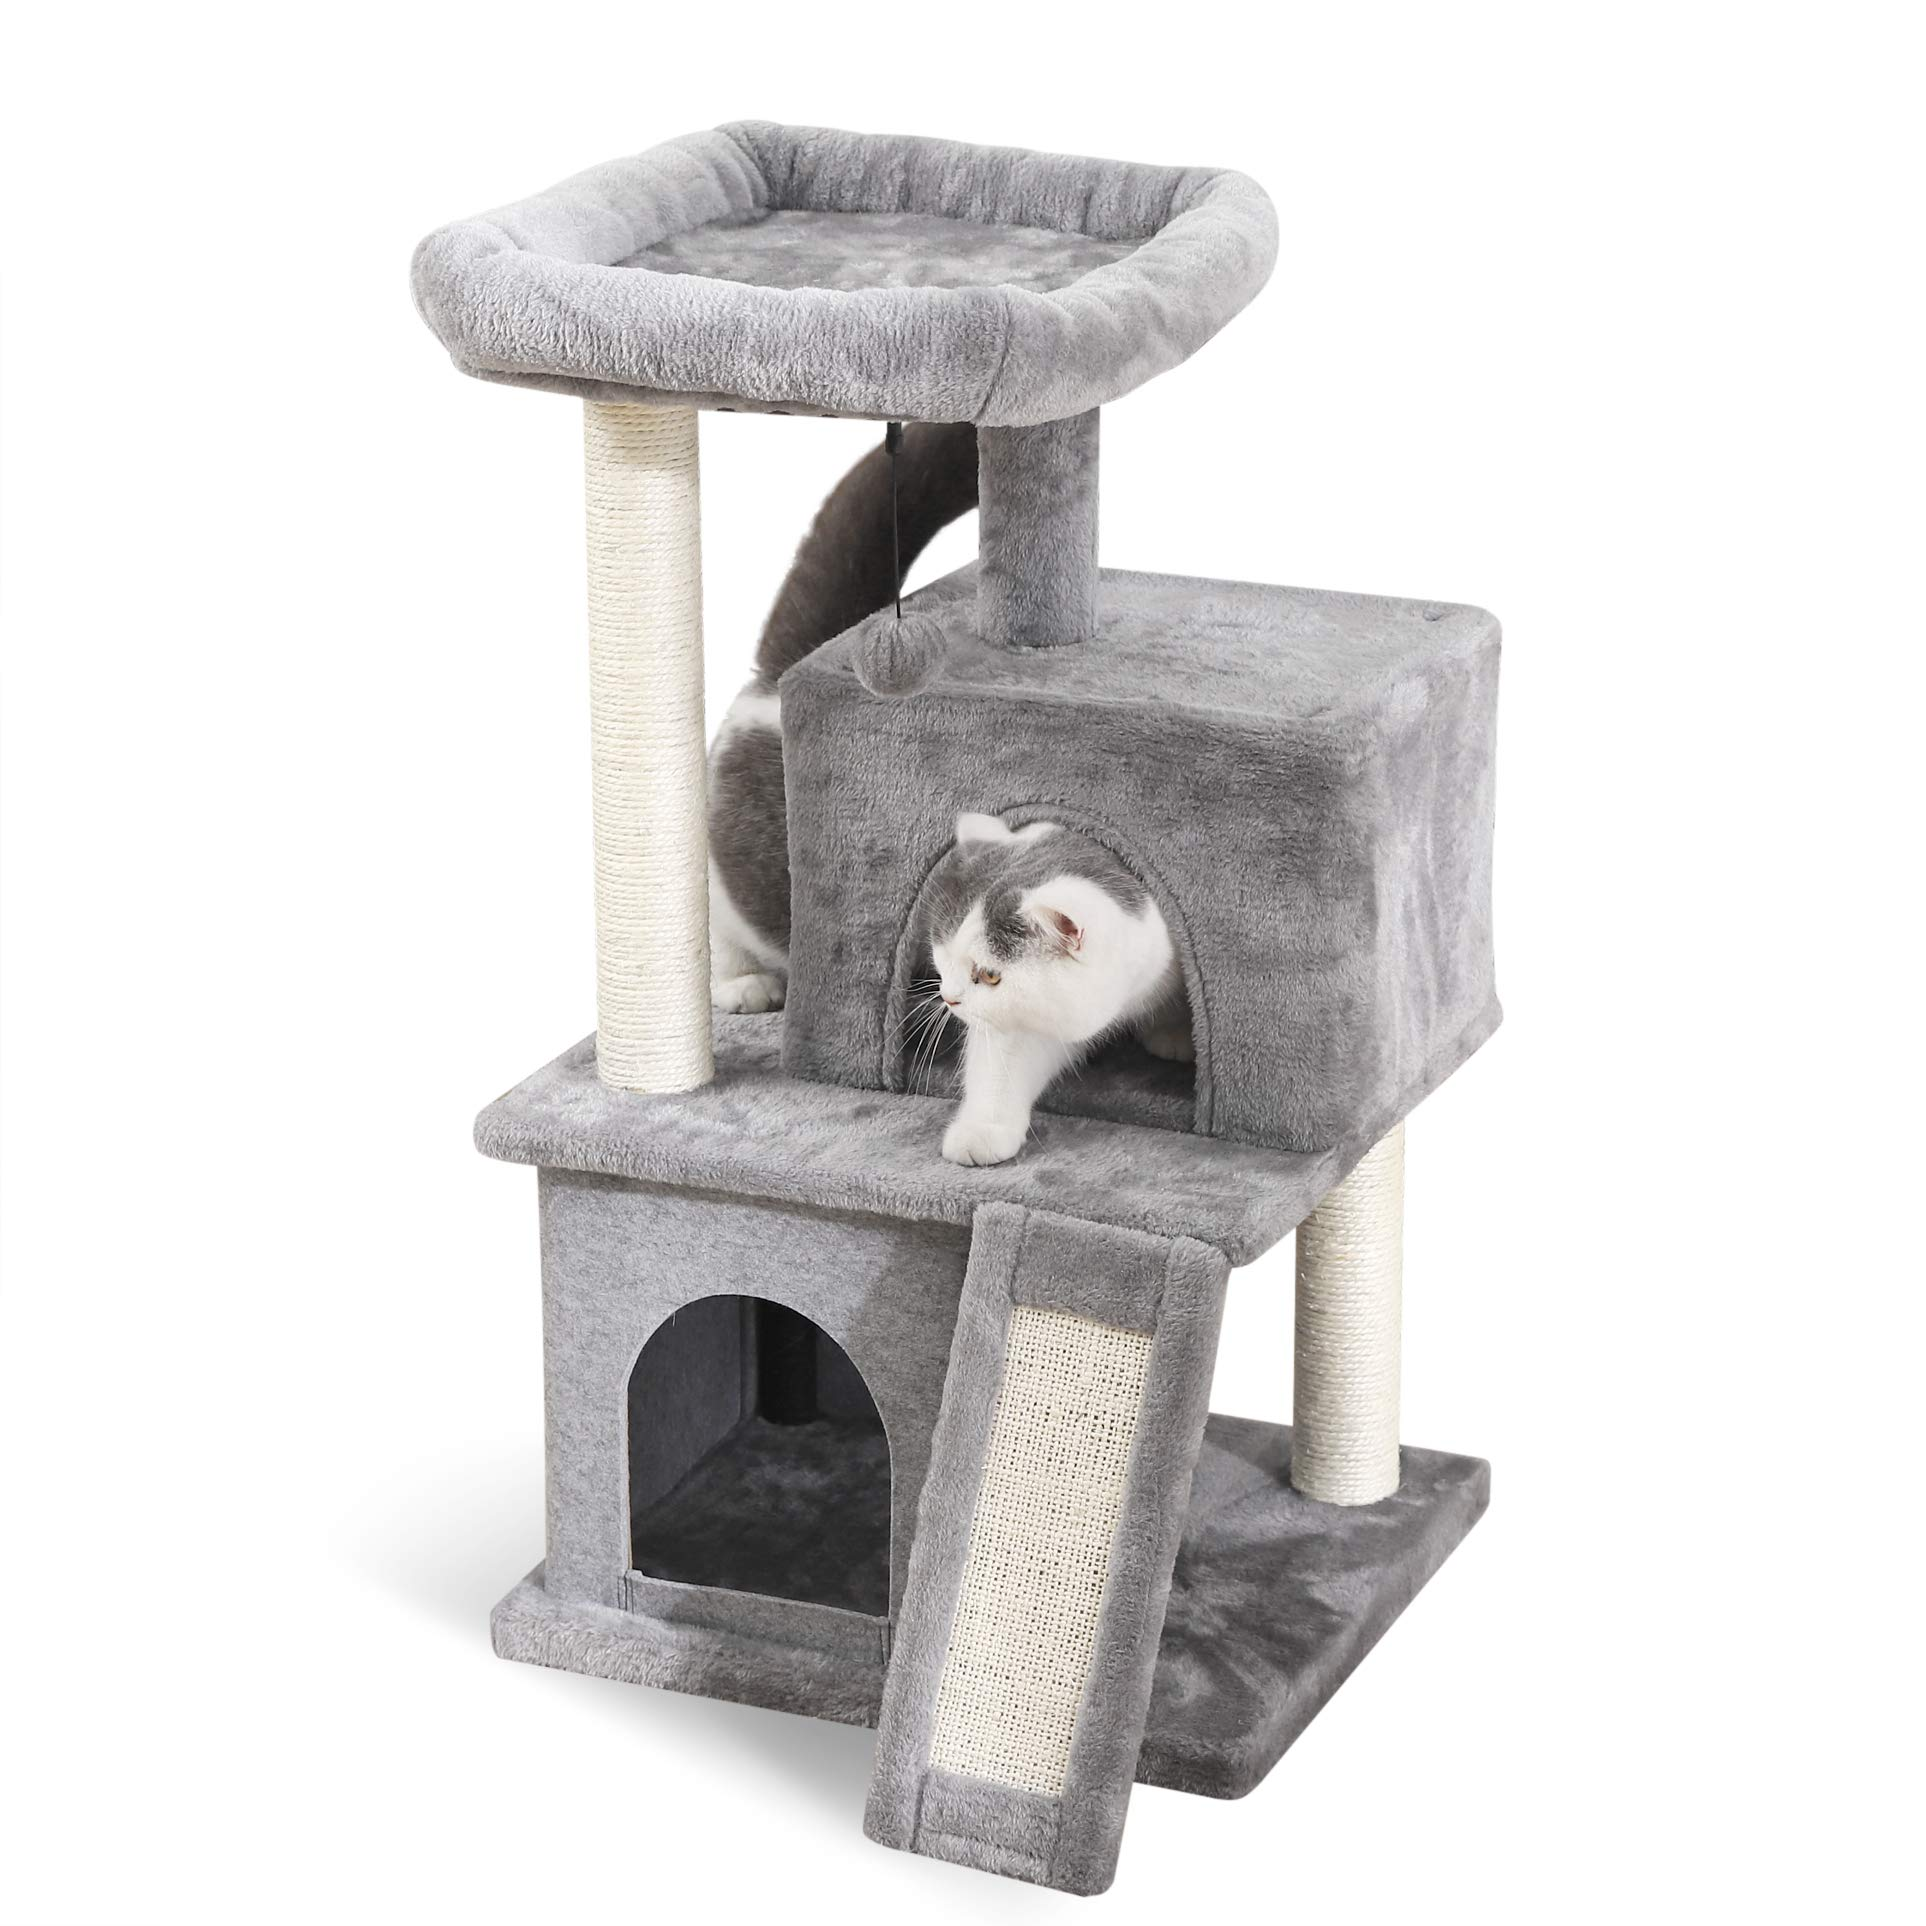 PAWZ Road Cat Tree Luxury Cat Tower with Double Condos, Spacious Perch, Fully Wrapped Scratching Sisal Post and Replaceable Dangling Balls Gray by PAWZ Road